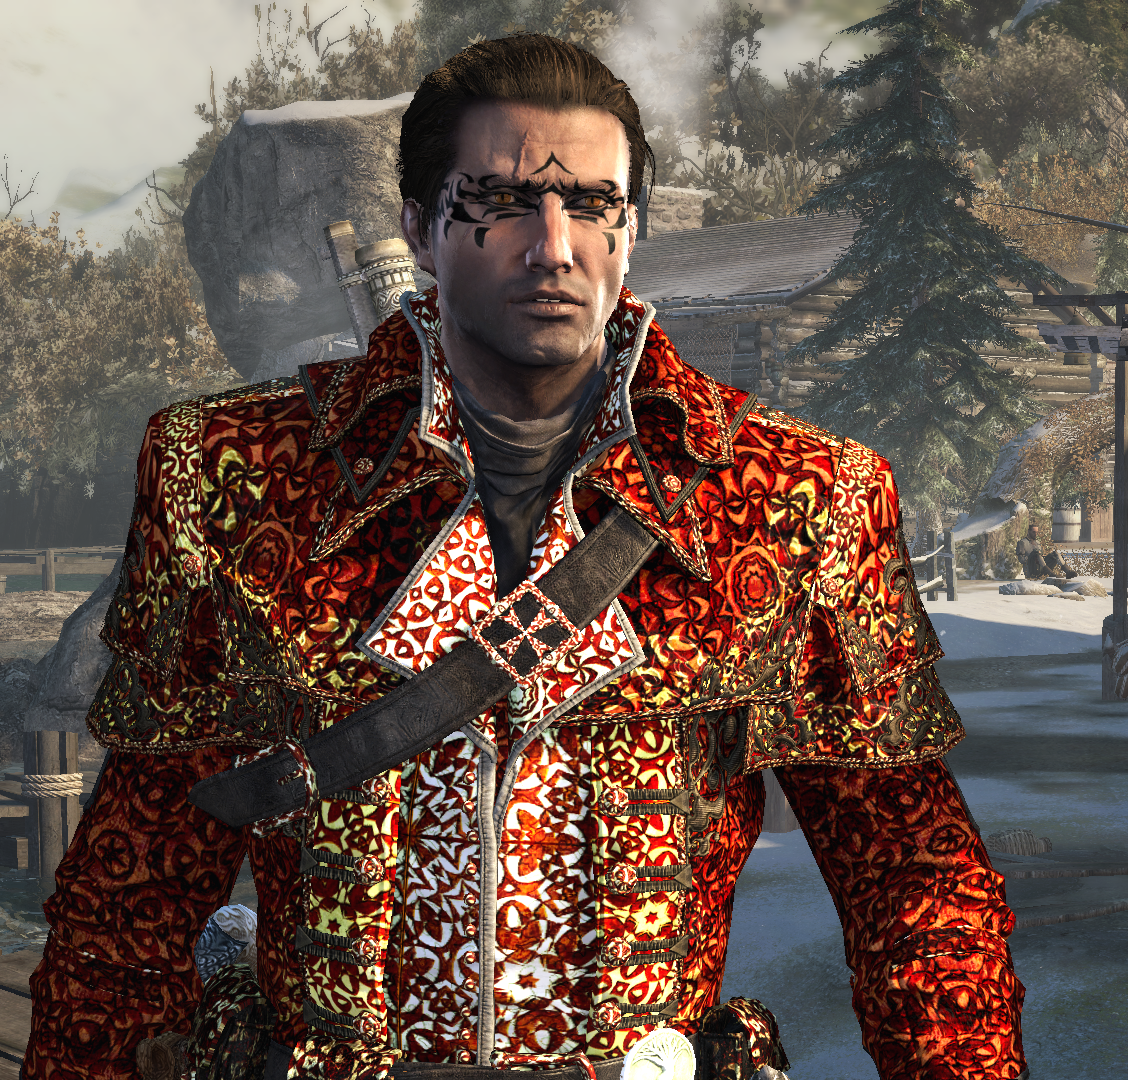 Assassin's Creed Rogue : Crew Pack Mod - Mod DB